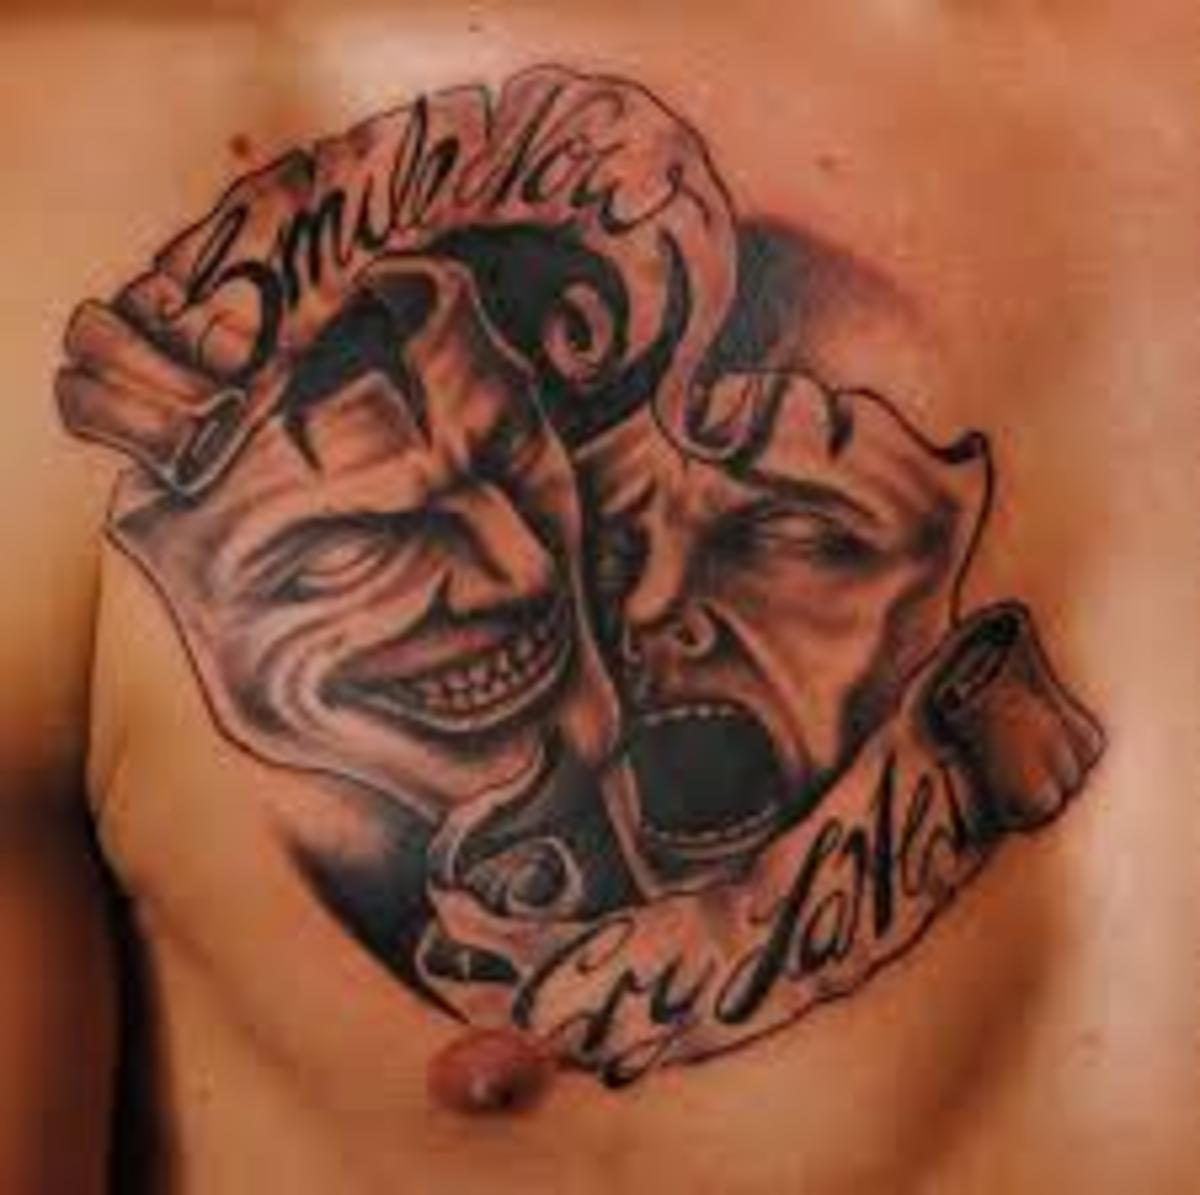 mask tattoo designs and mask tattoo meanings mask tattoo ideas and mask tattoo pictures hubpages. Black Bedroom Furniture Sets. Home Design Ideas